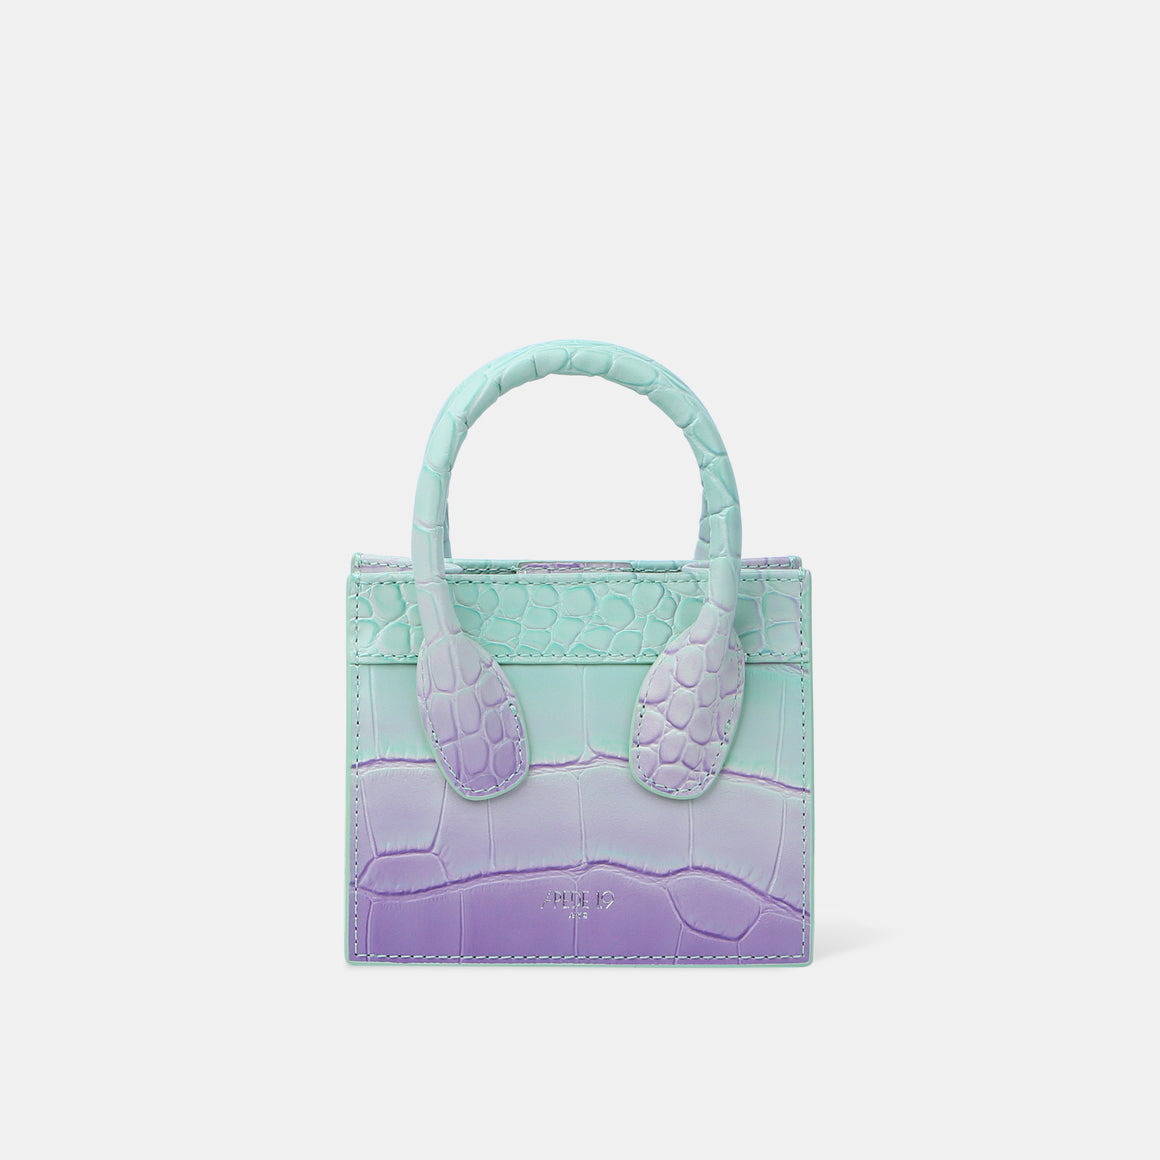 Water-lilies Croc Poker Face Mini Tote (Pre-order)